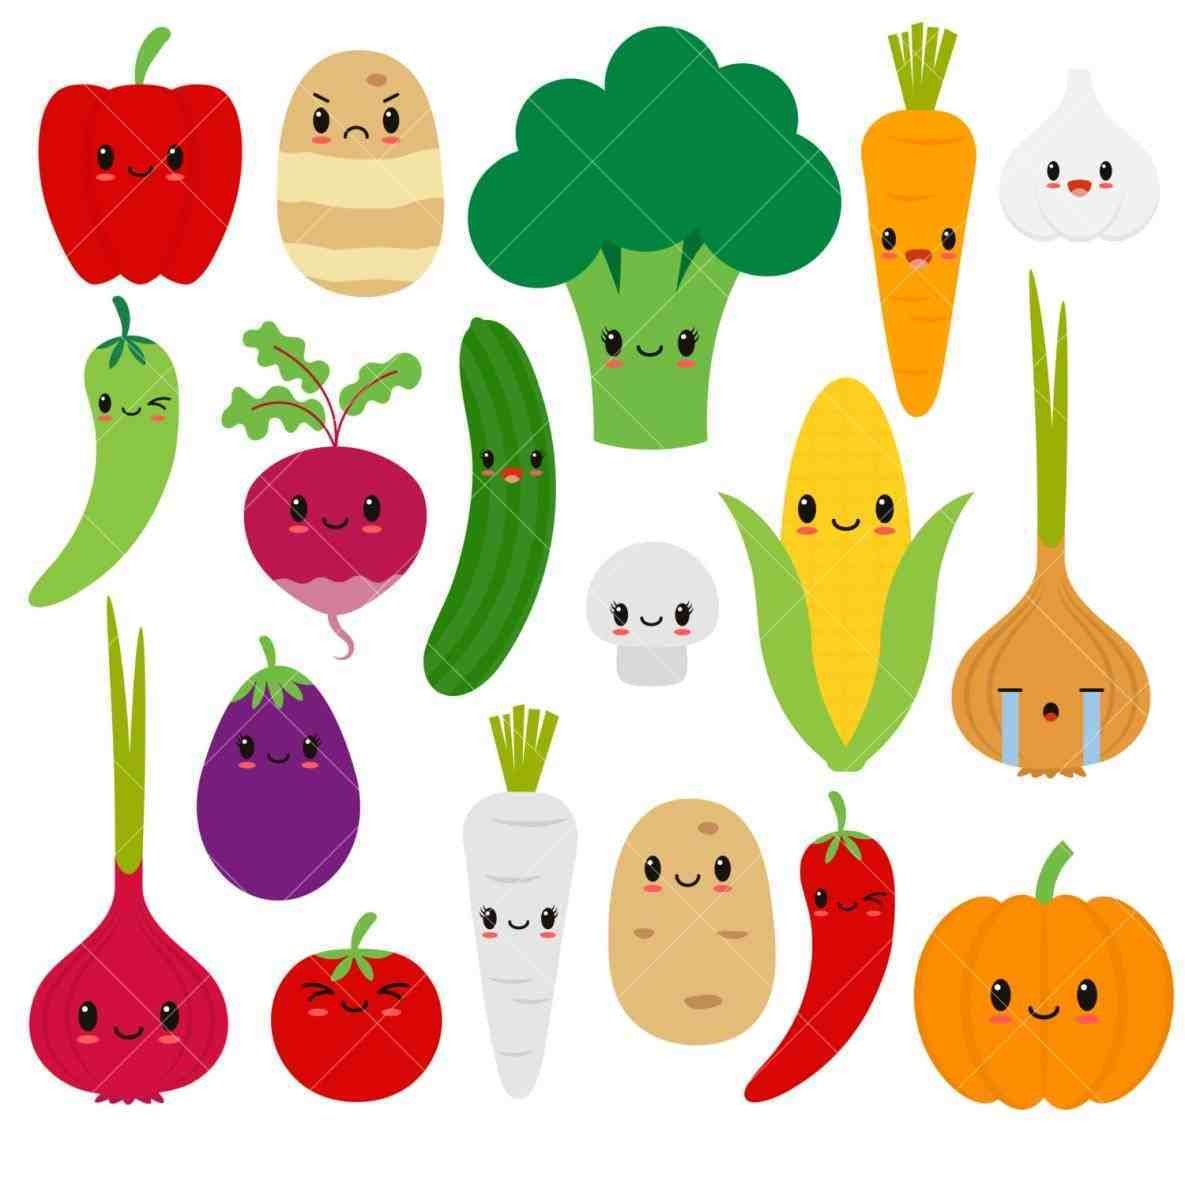 1185x1185 Garden Clipart Scene Vegetable Vector Cartoon Stock Fair Free Clip